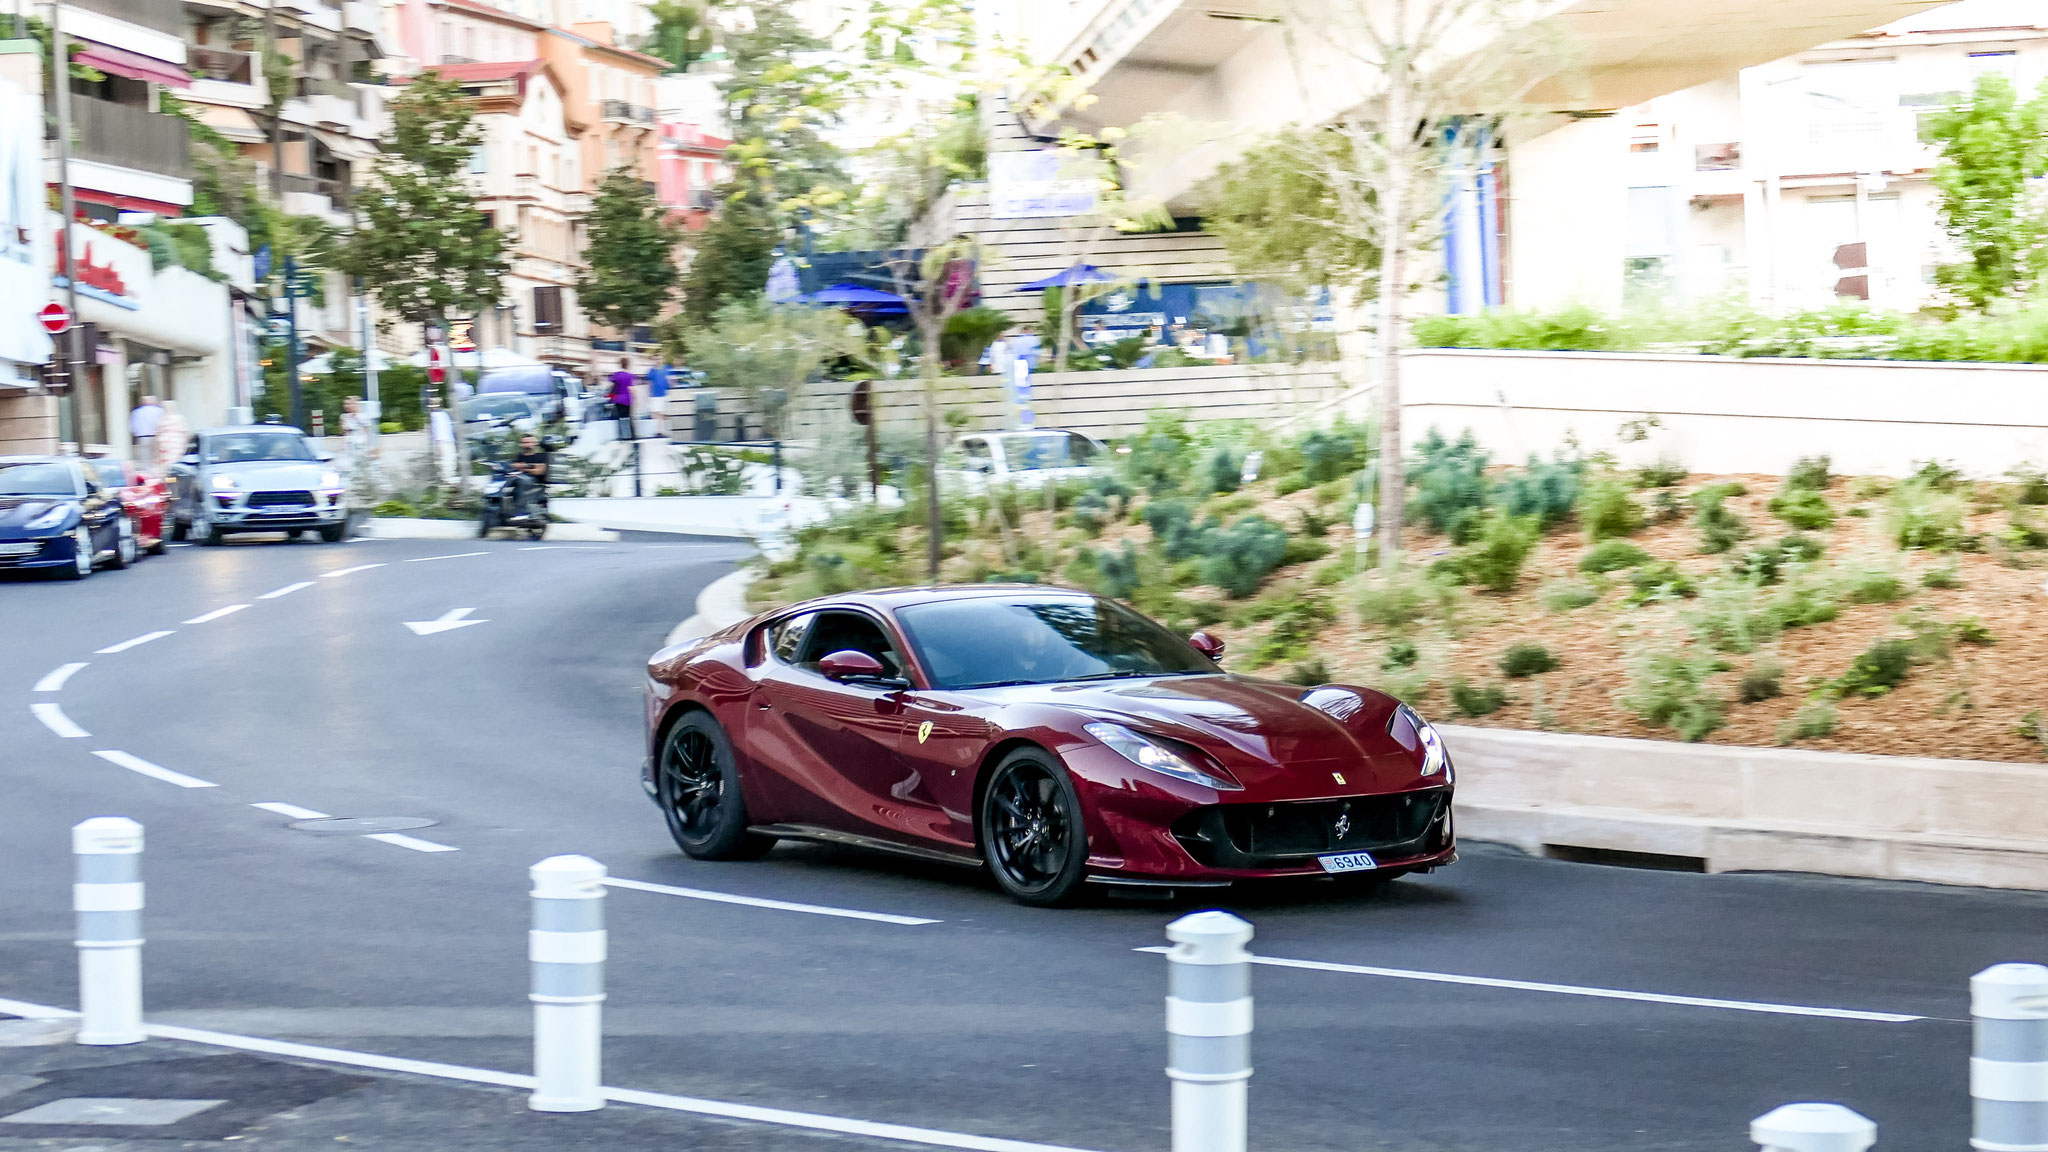 Ferrari 812 Superfast - 6940 (MC)